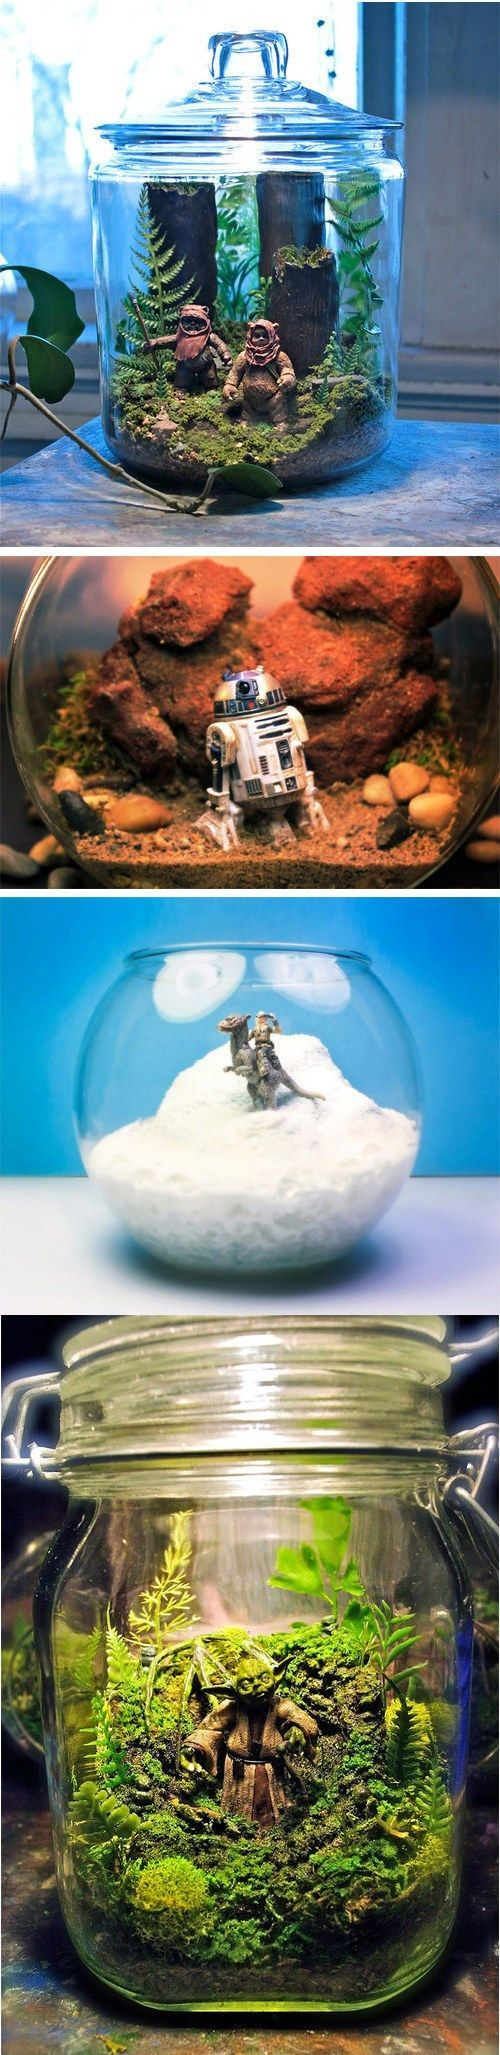 Awesome Star Wars Terrariums Are Awesome And For Sale� even better: #DIY them.